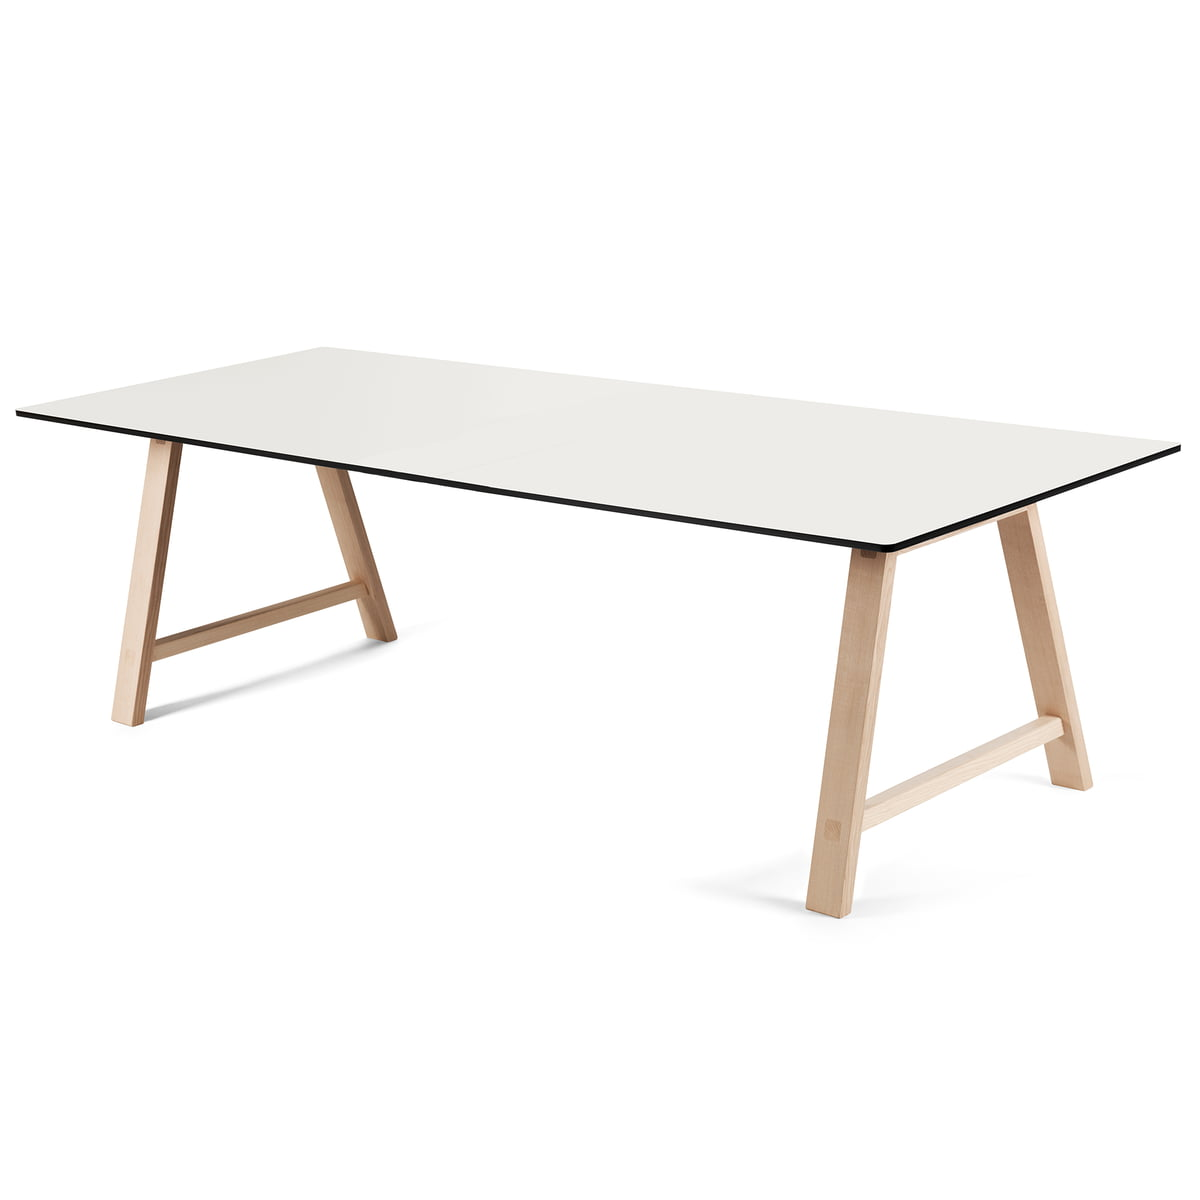 Etonnant T1 Extending Table 220 Cm By Andersen Furniture (frame Soaped Oak, Table  Top Laminate